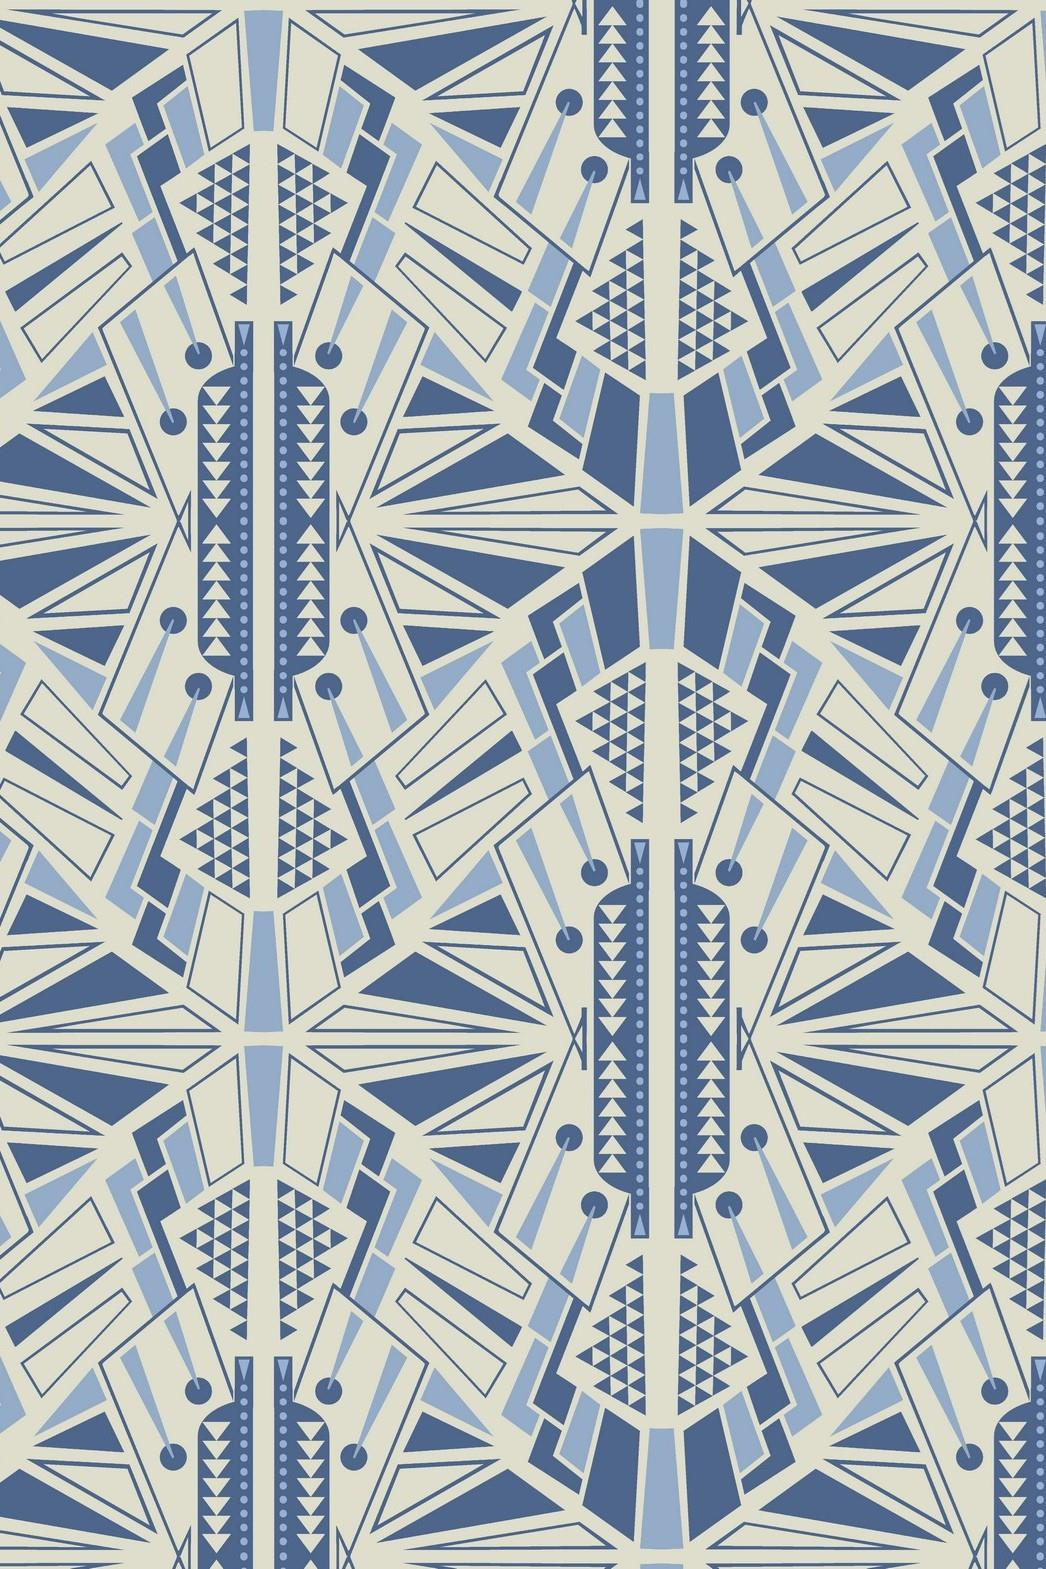 Fardis Deco Empire State Wallpaper 12093